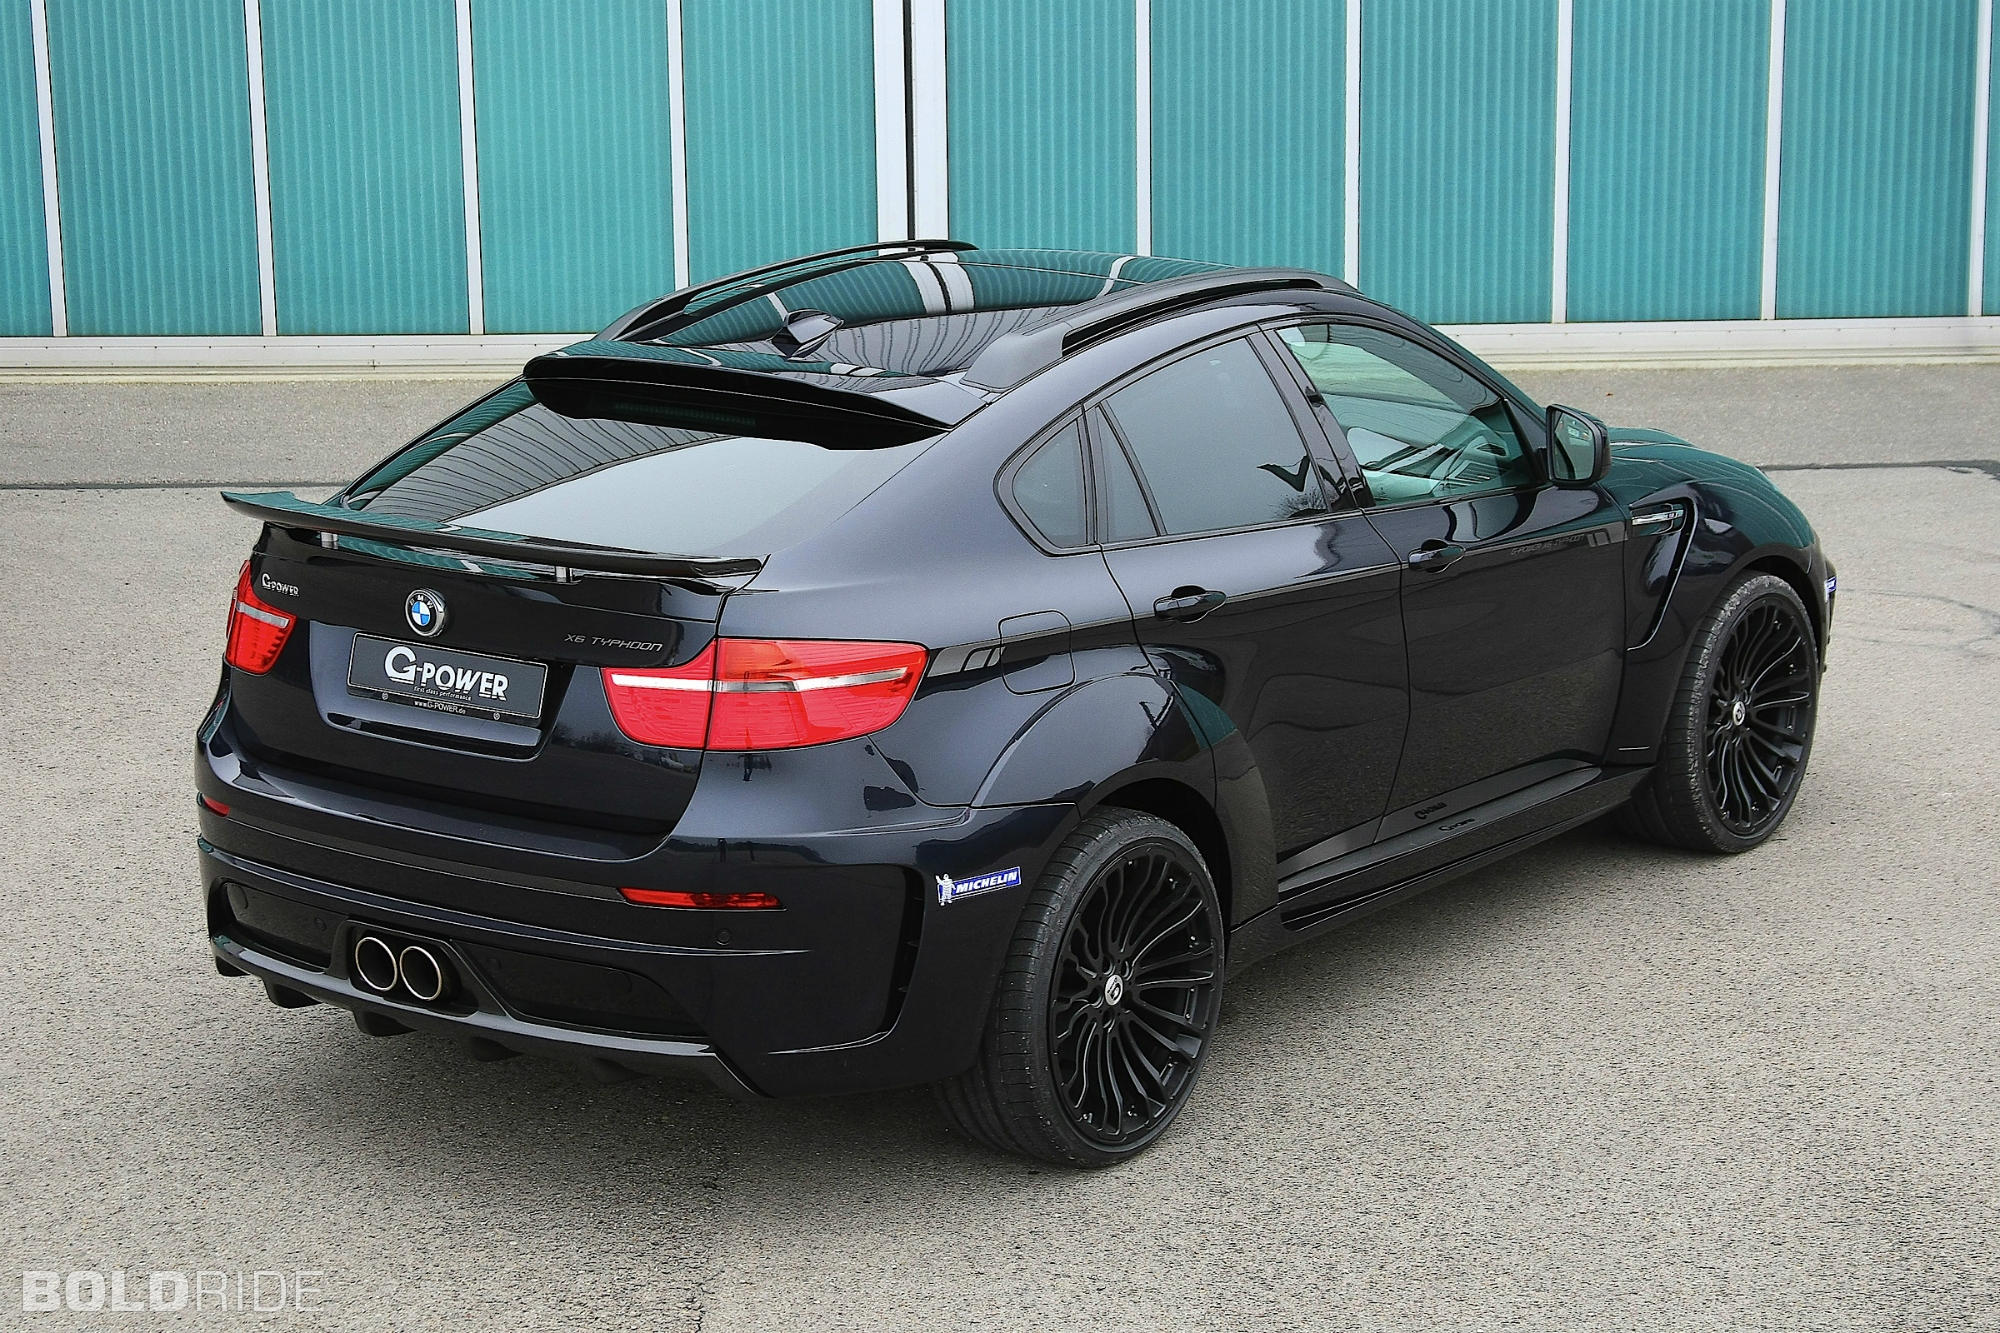 2012 bmw x6 m partsopen. Black Bedroom Furniture Sets. Home Design Ideas